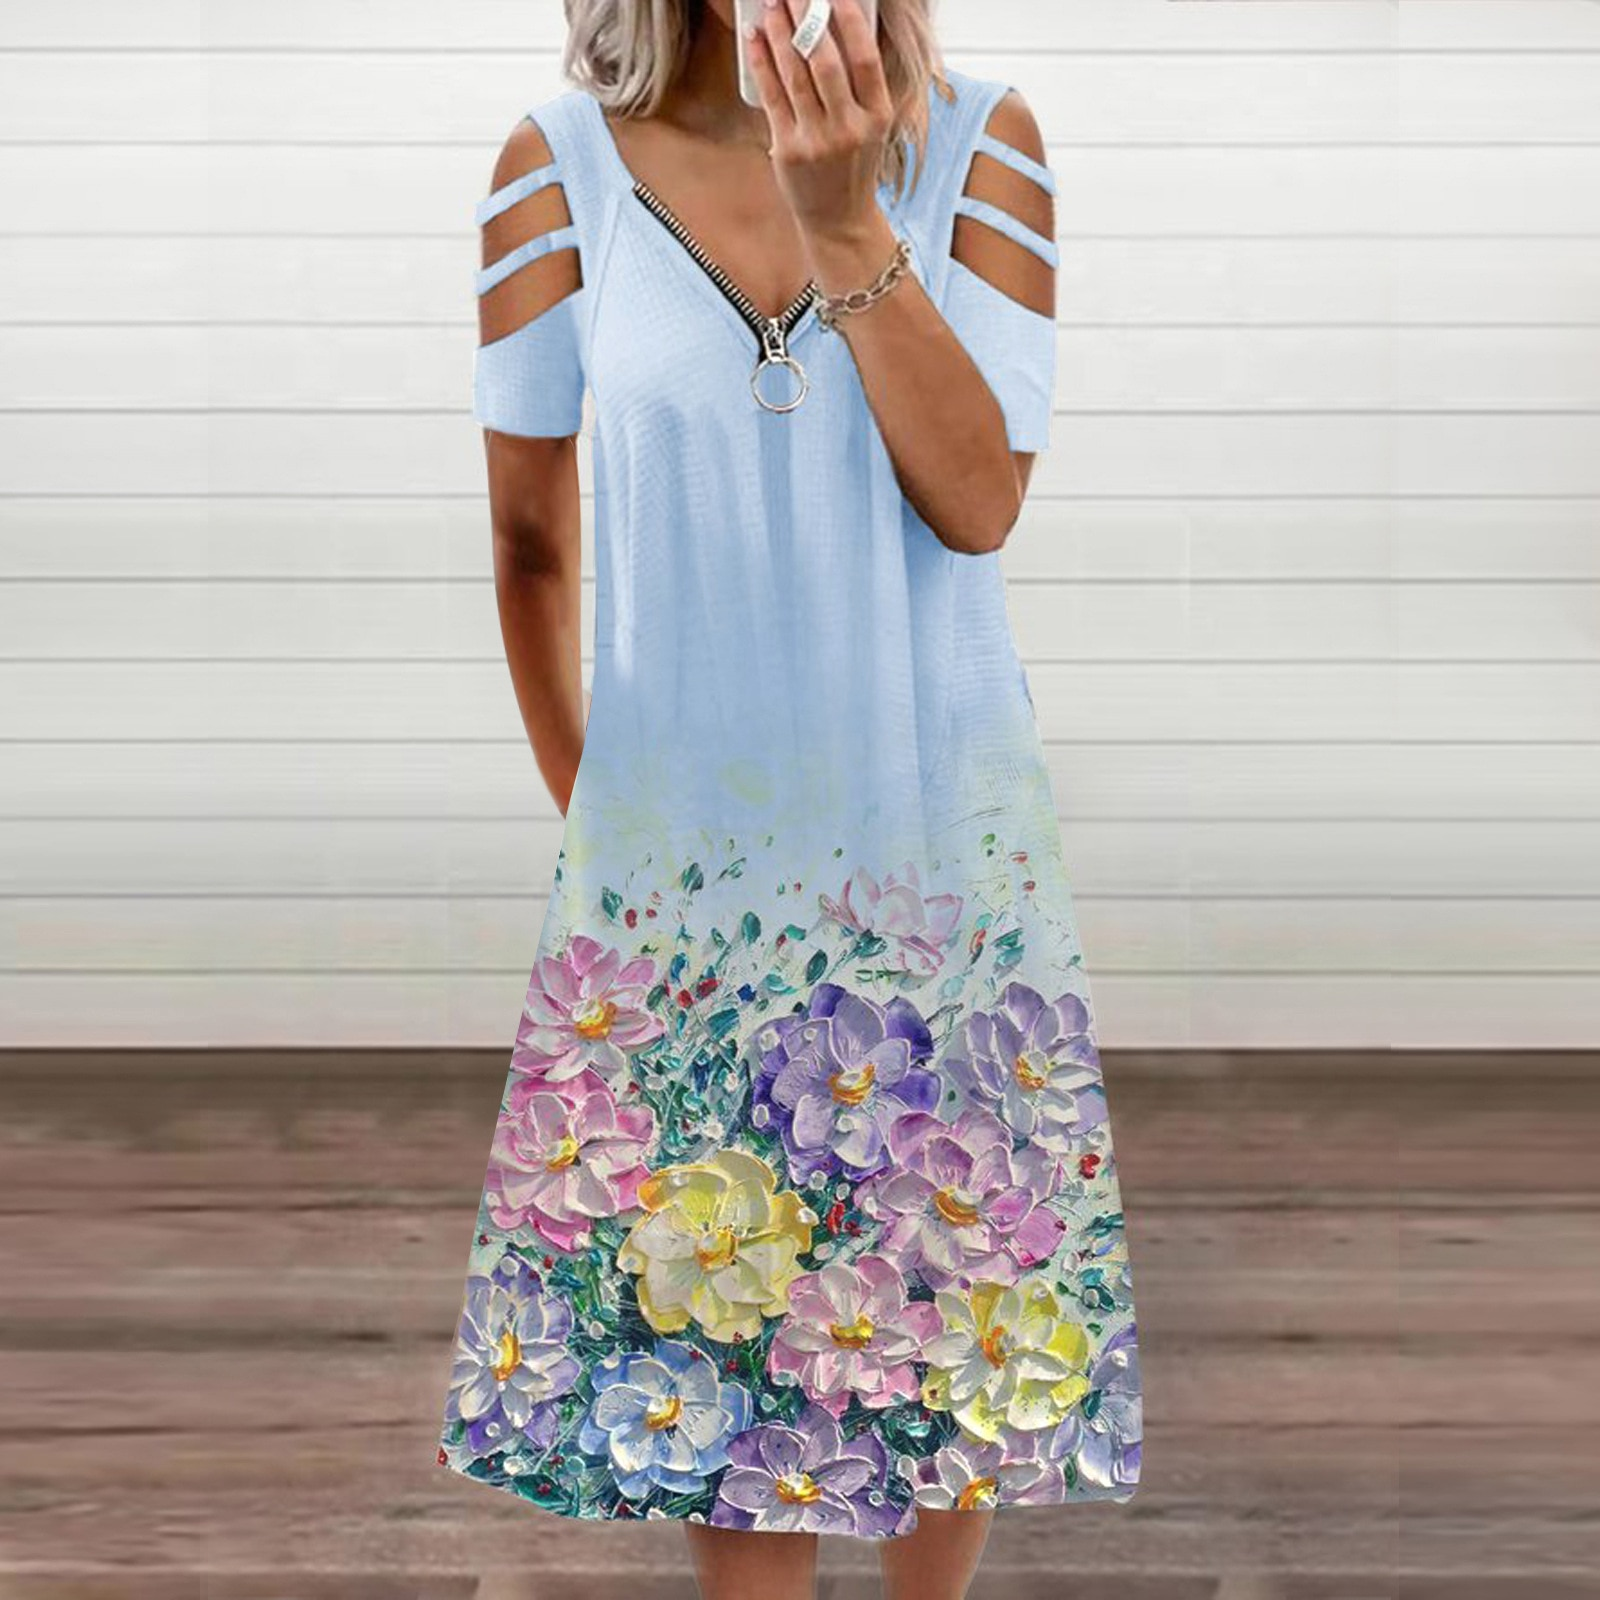 Women Dresses Summer Sexy V Neck Floral Print Boho Beach Dress Women Casual Clothes Elegant Party Dresses For Ladies Sundress